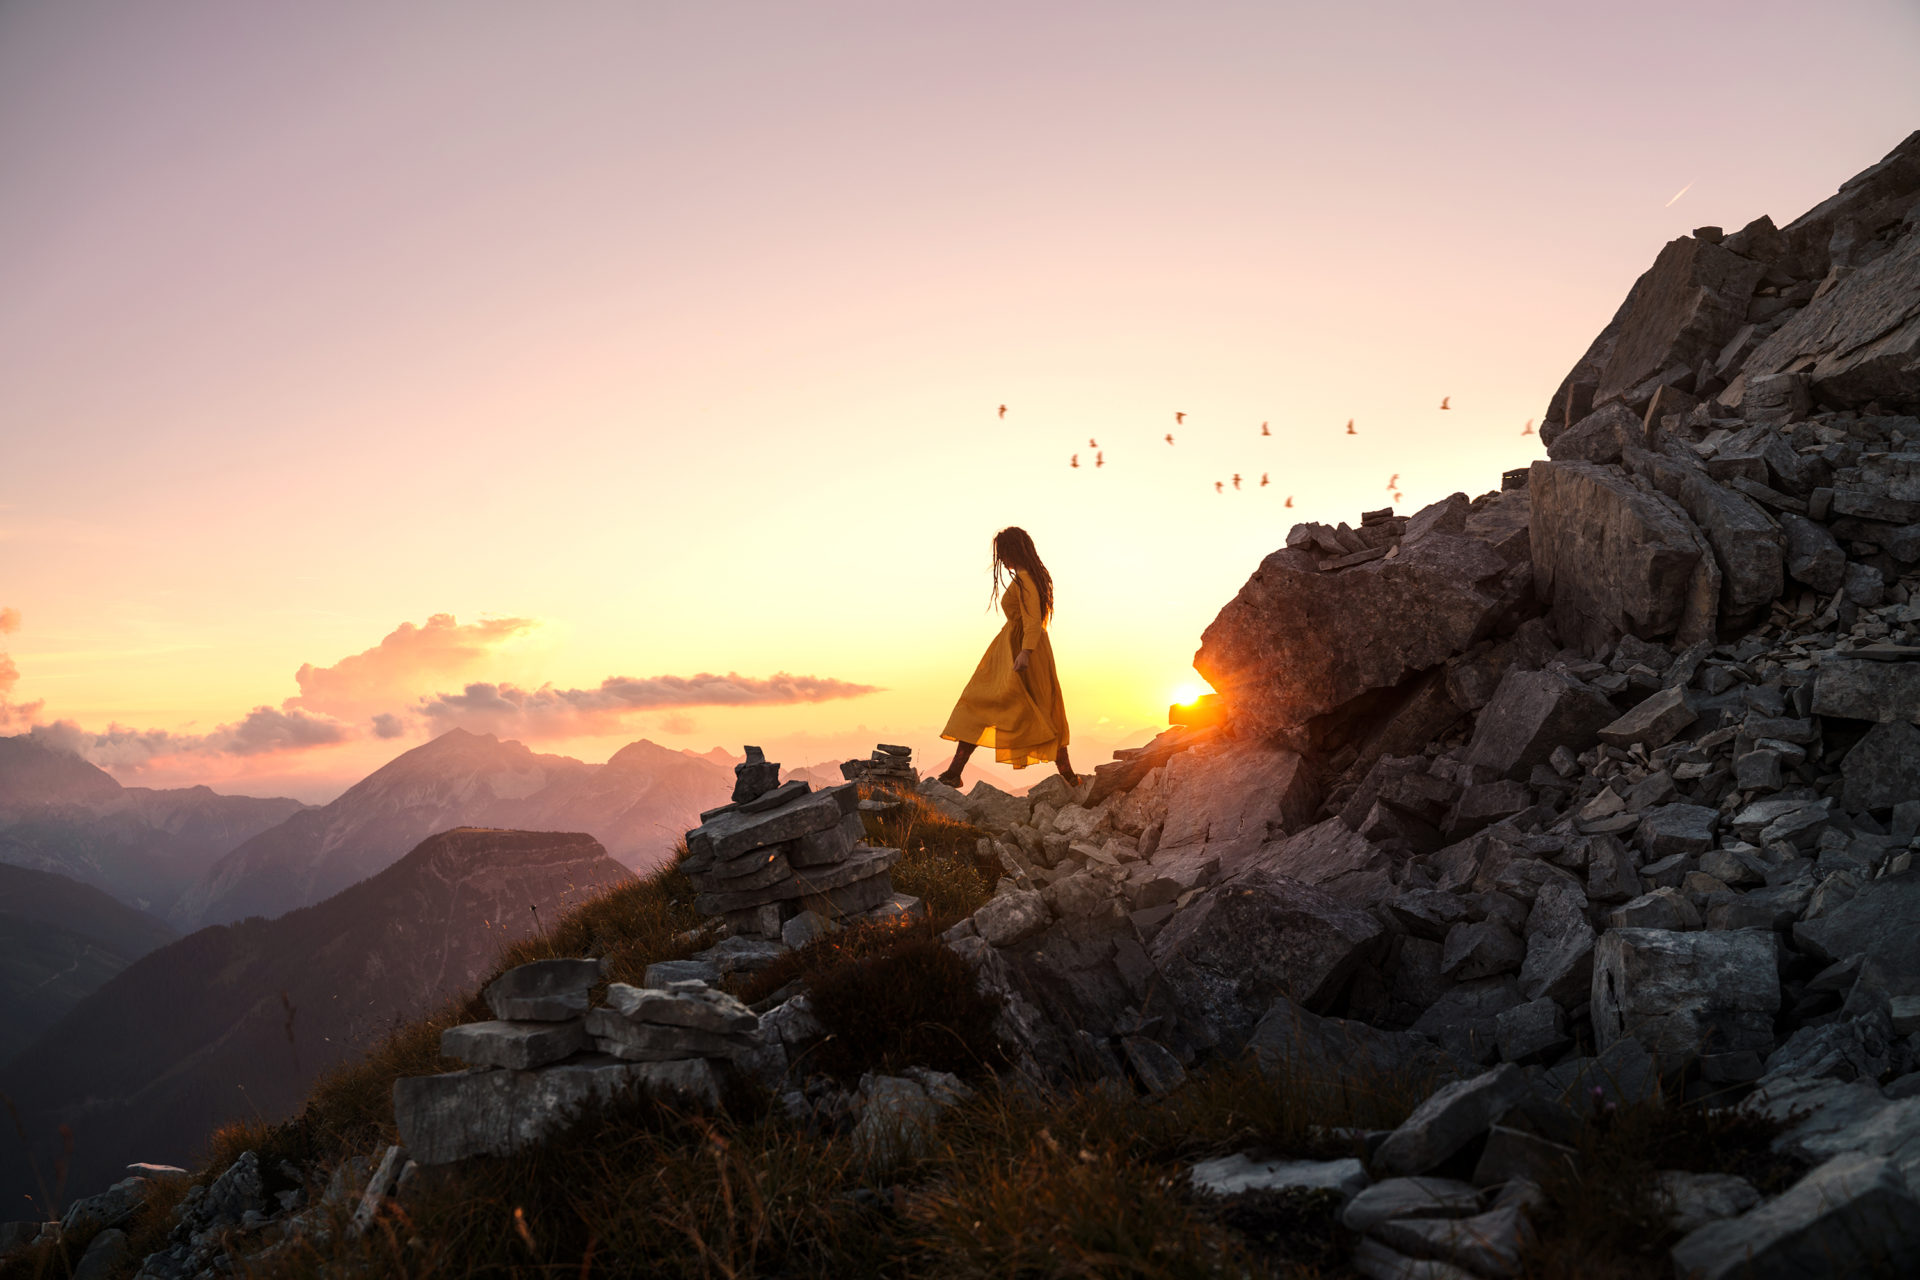 Self portrait photography by Anna Heimkreiter. The photo shows a woman wandering through the mountains at sunset. The mood is calm and peaceful.